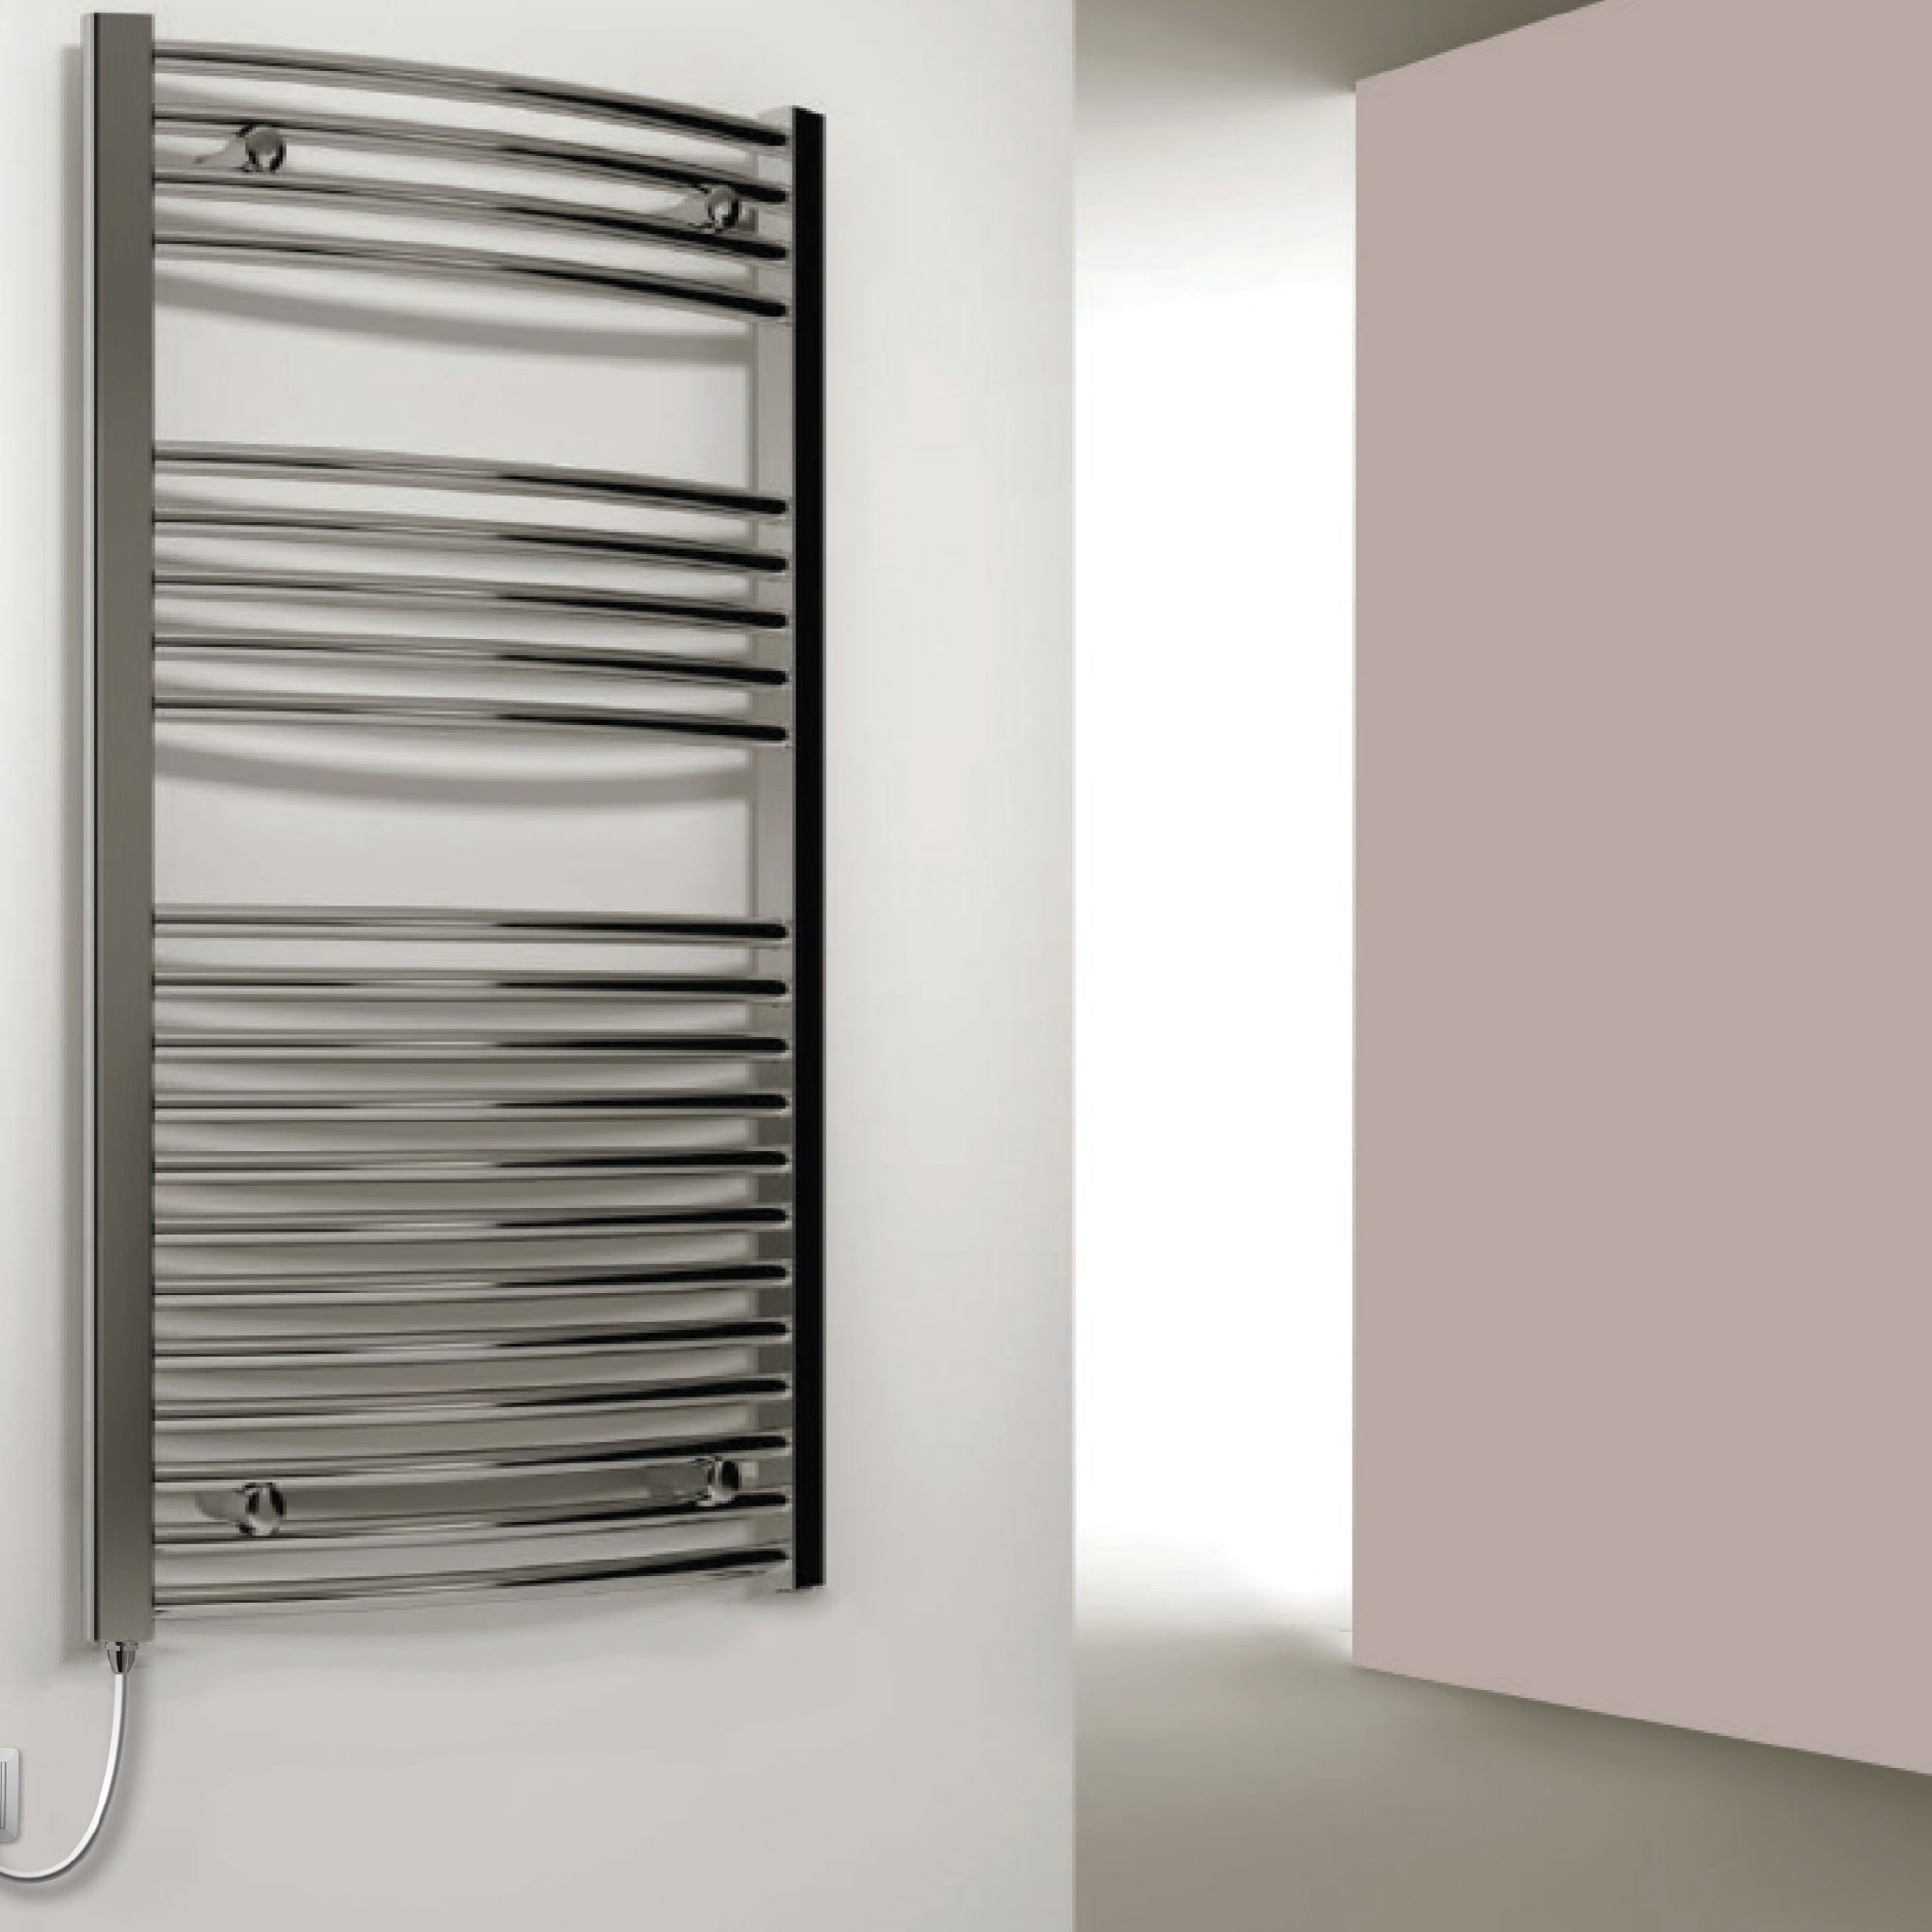 Reina Capo Curved Thermostatic Electric Heated Towel Rail 1200mm H x 500mm W Chrome